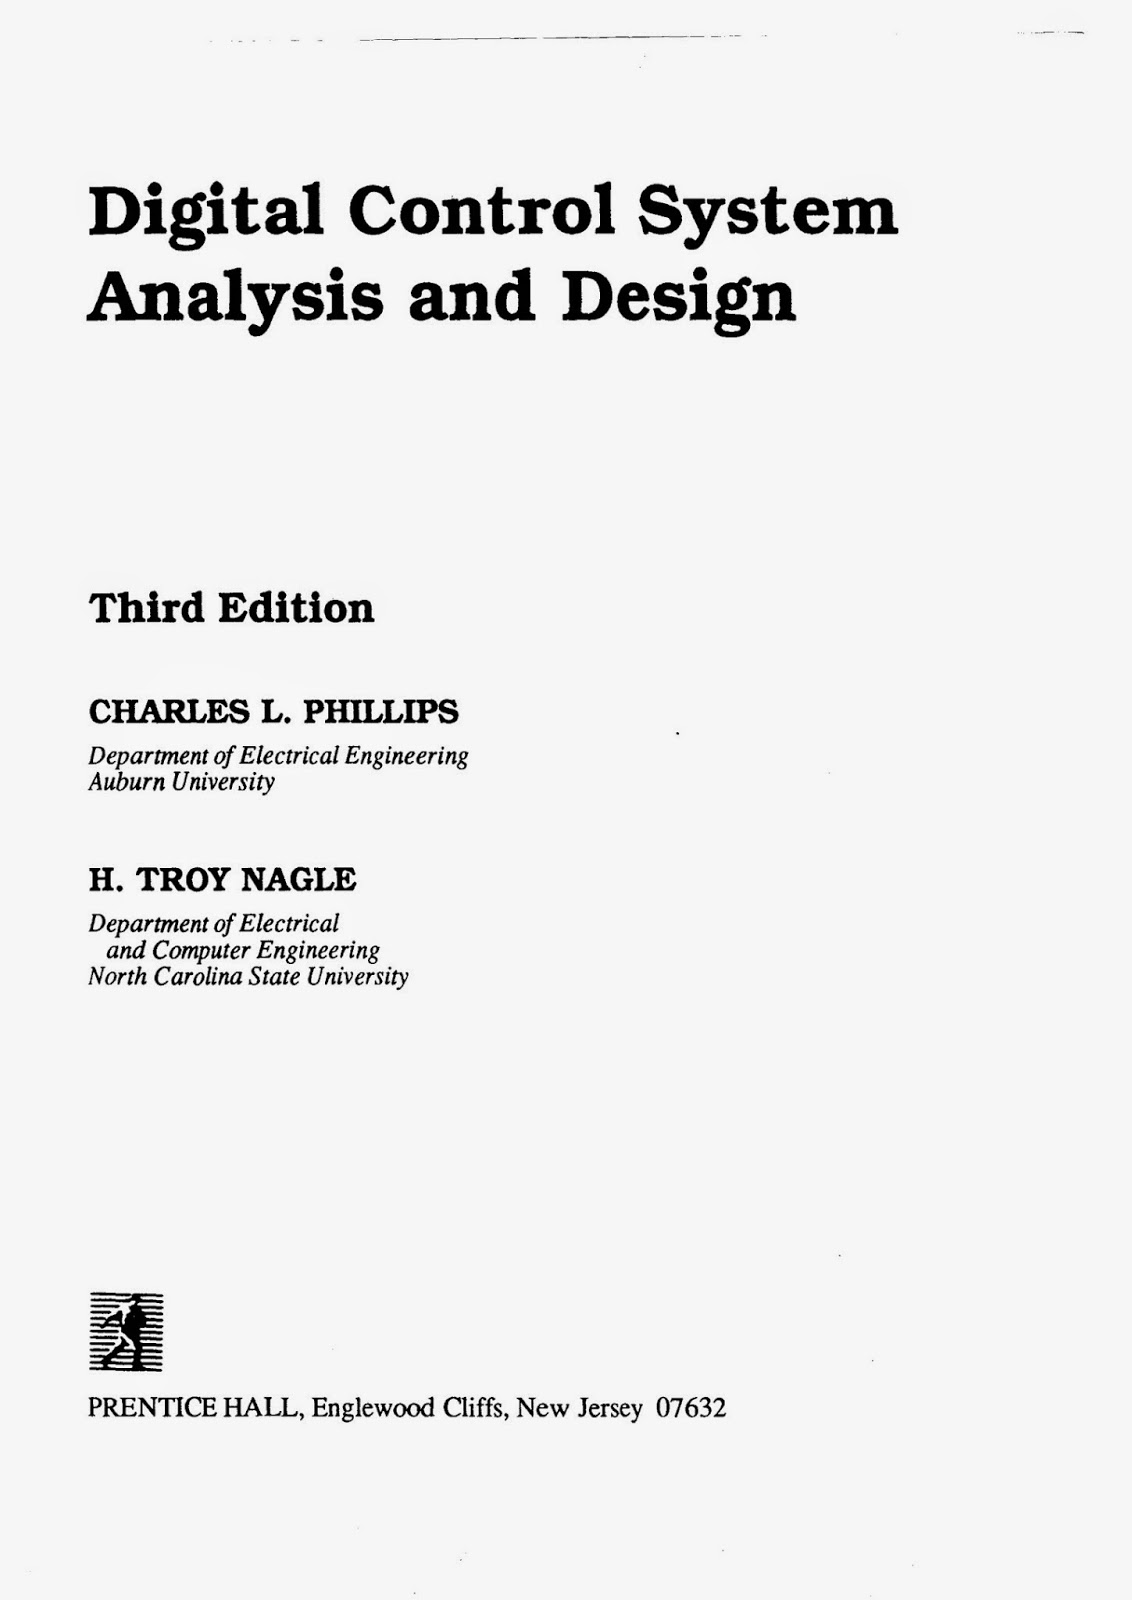 Free Book Bank Digital Control System Analysis And Design 3rd Edition By Charles L Philips Pdf Free Downoad